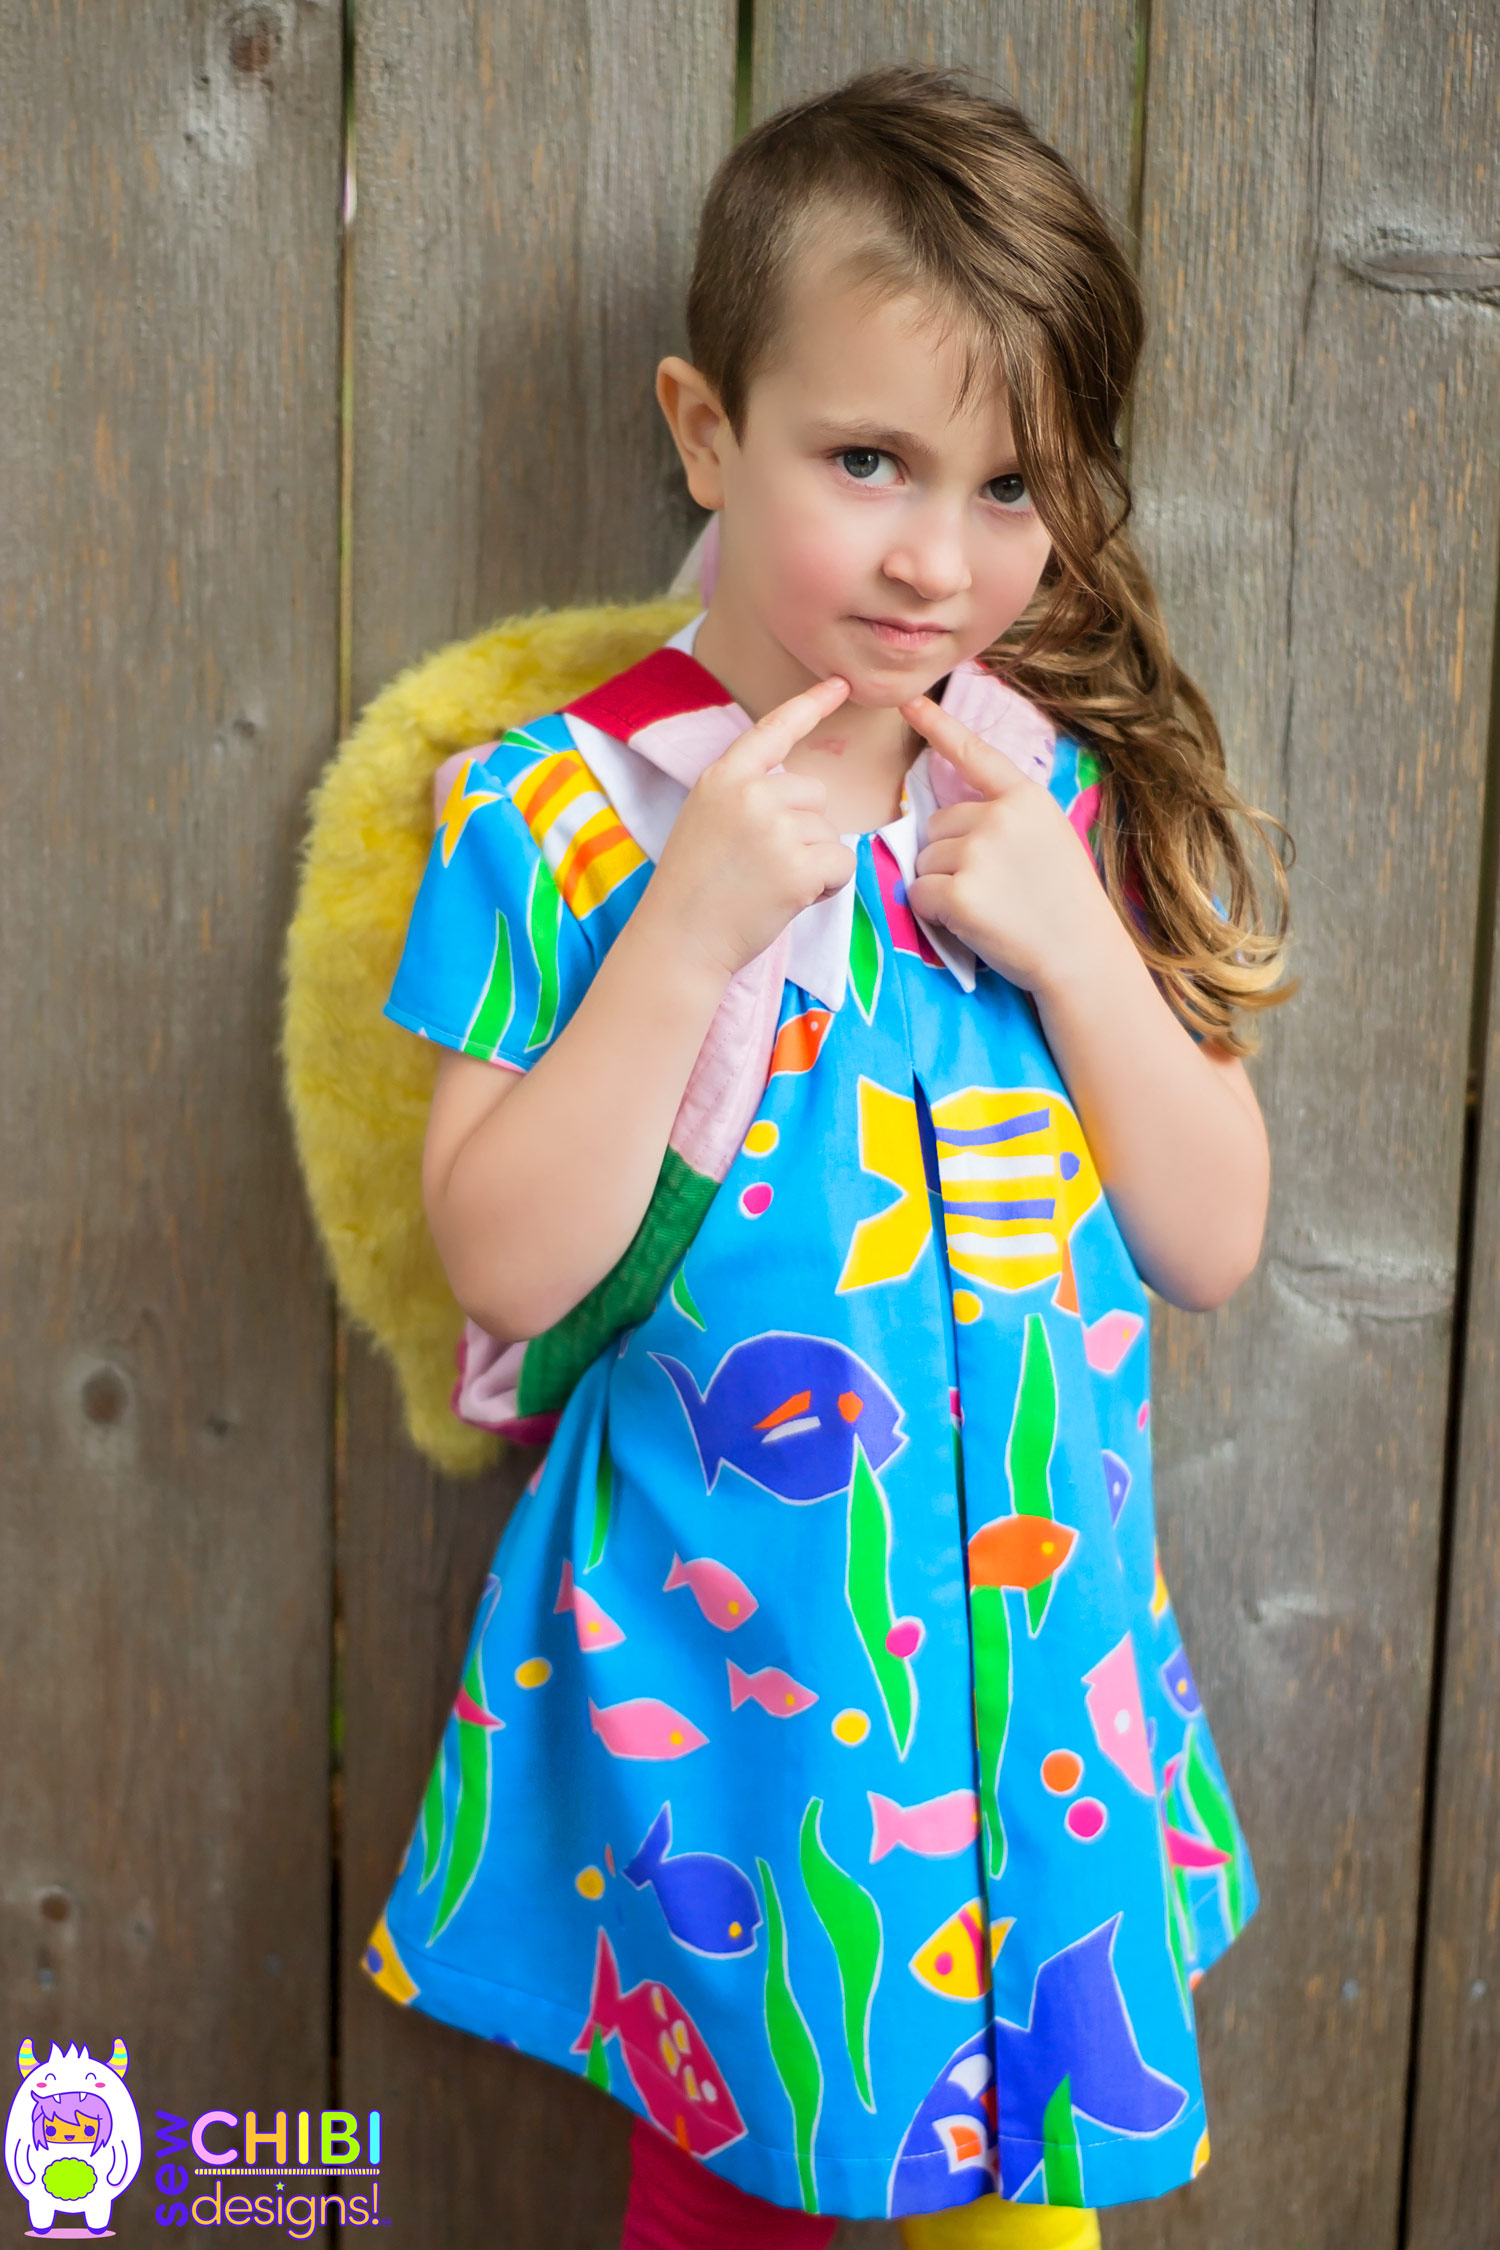 eleena-dress-pdf-pattern-first-day-of-school-7.jpg